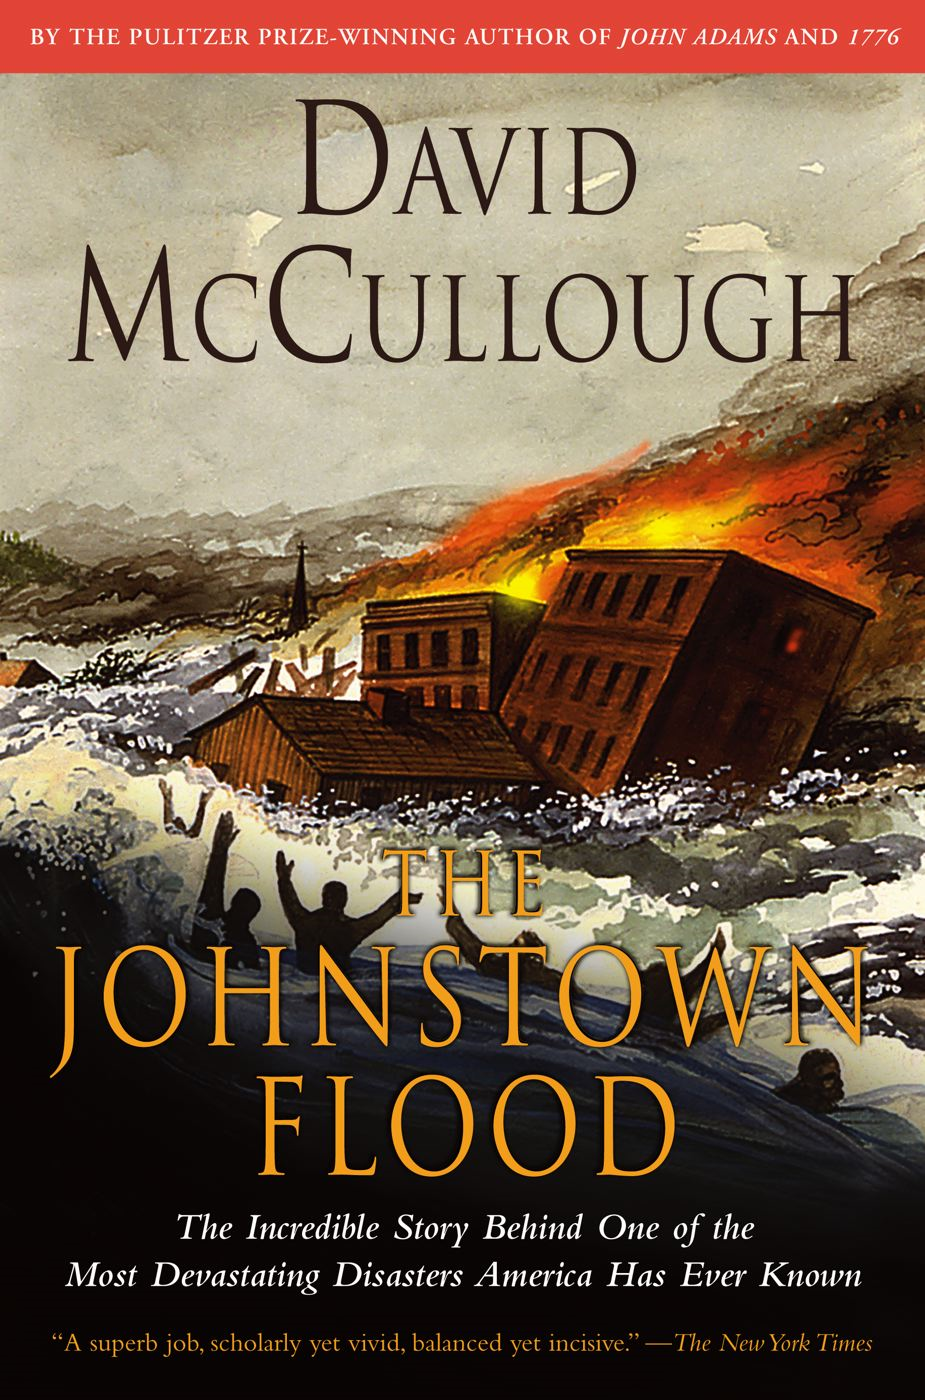 Johnstown Flood By: David McCullough